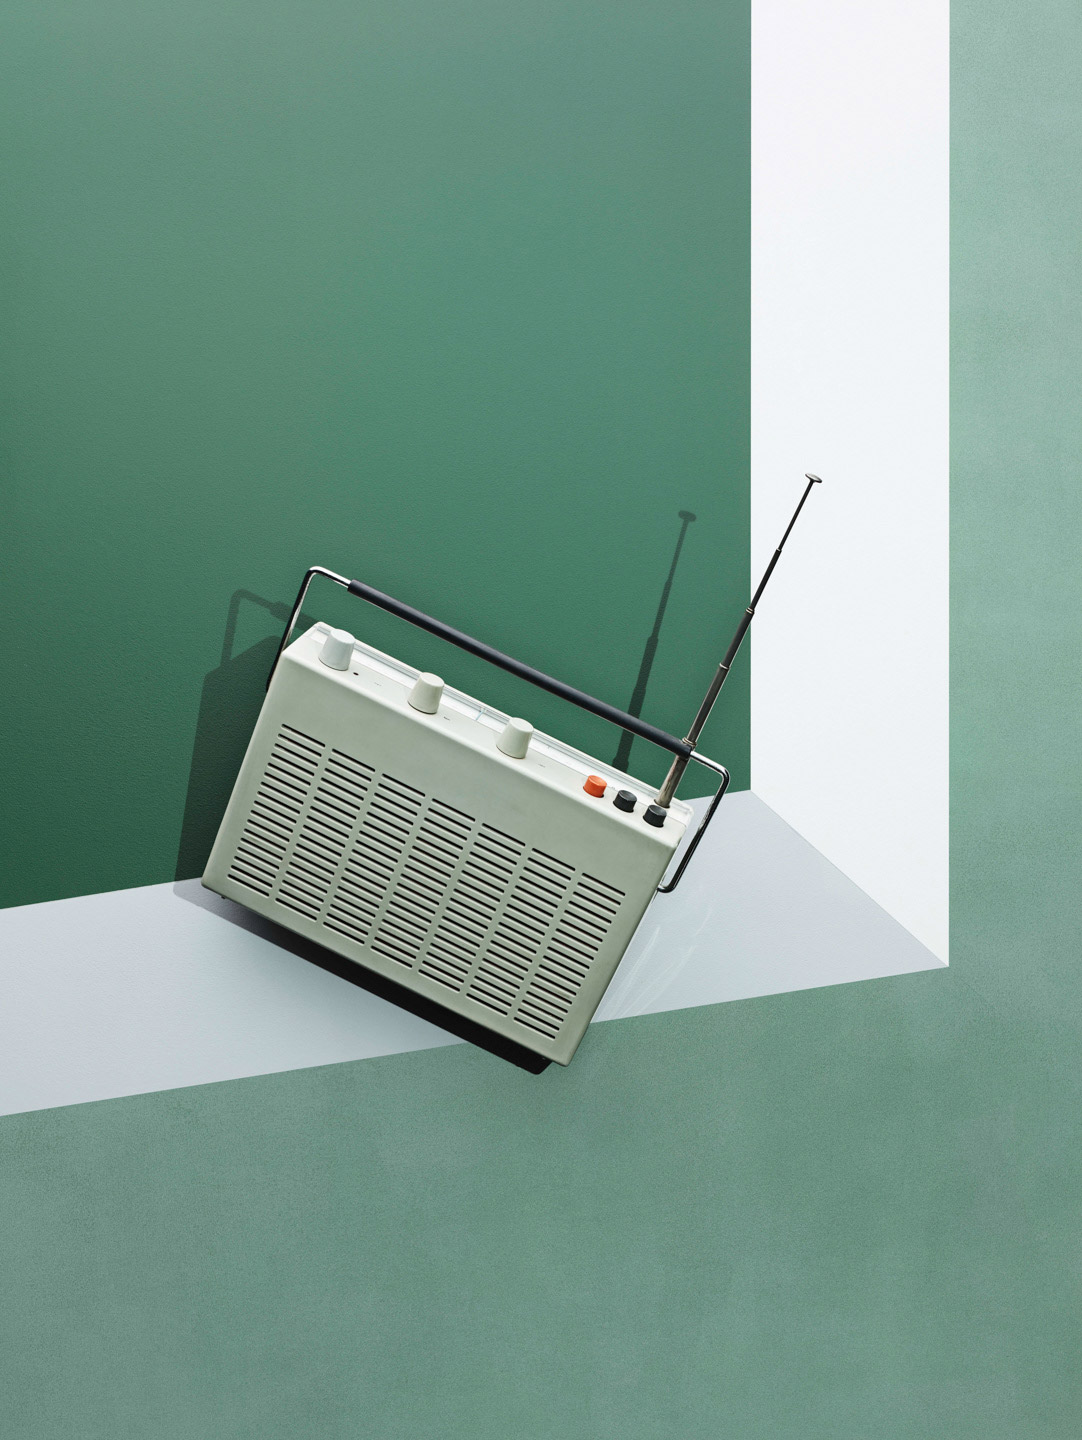 James Day: Still lives with electronic appliances designed by German Designer, Dieter Rams